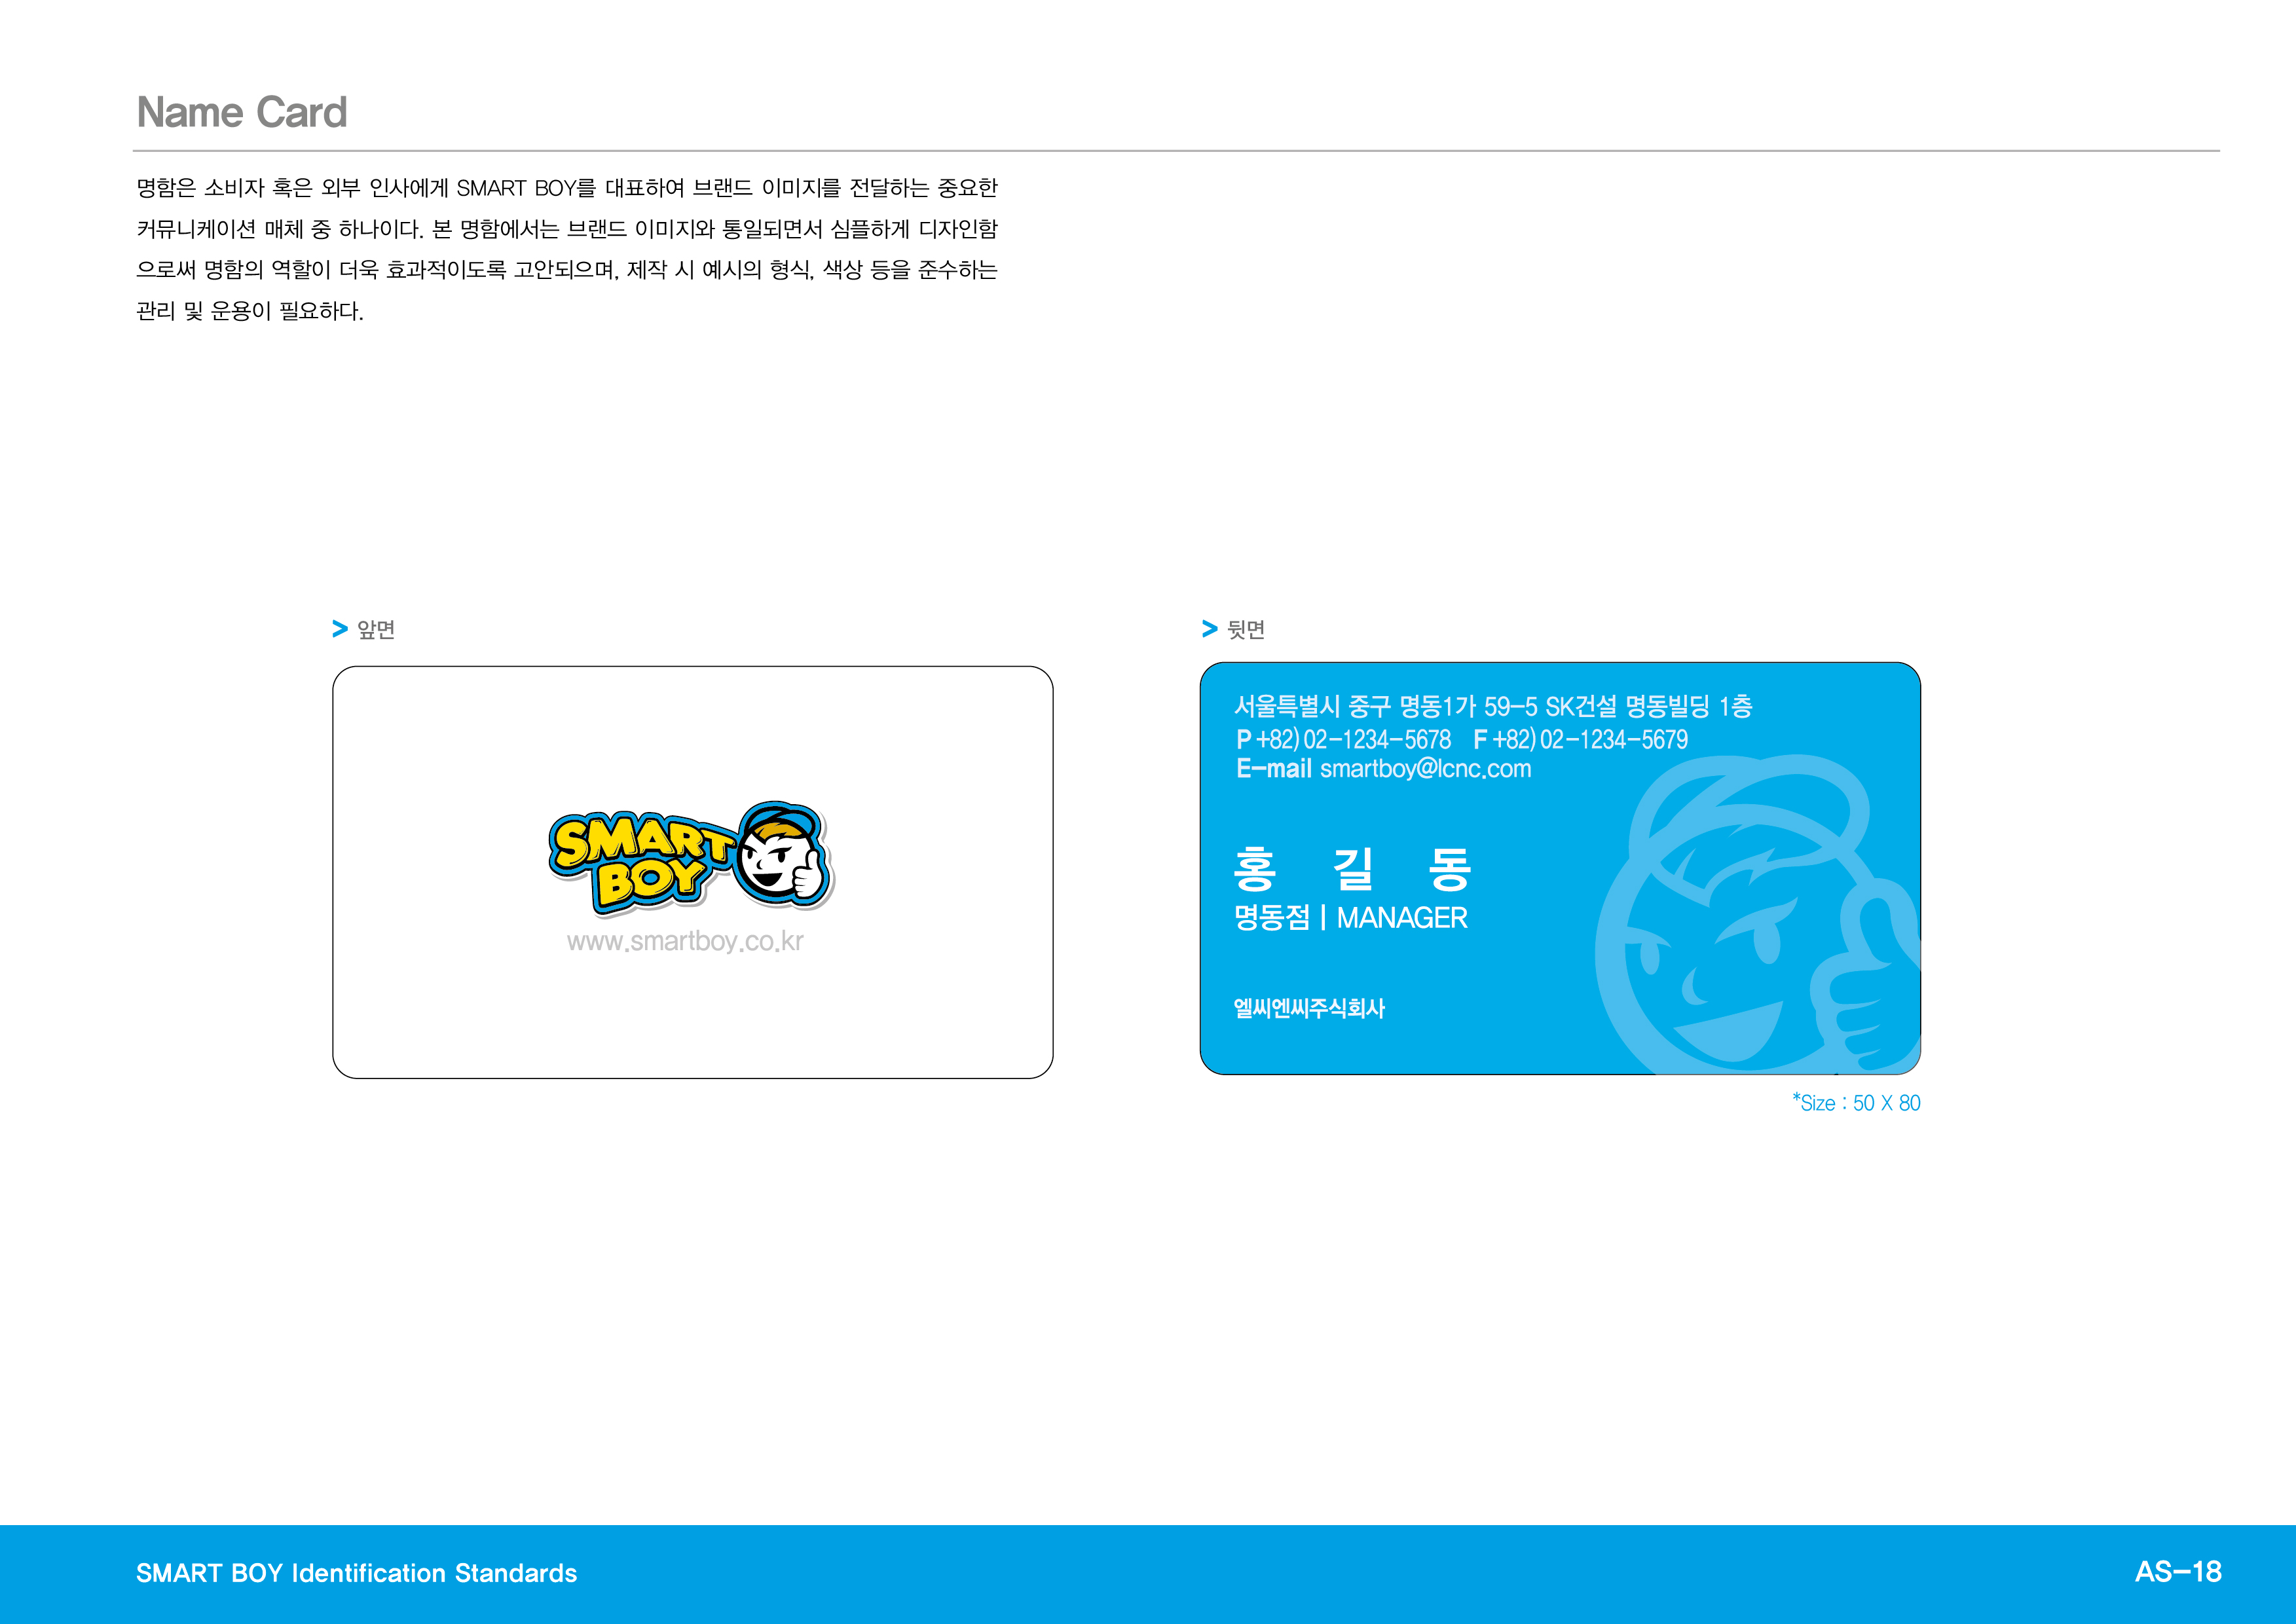 AS_18.Business Card-01